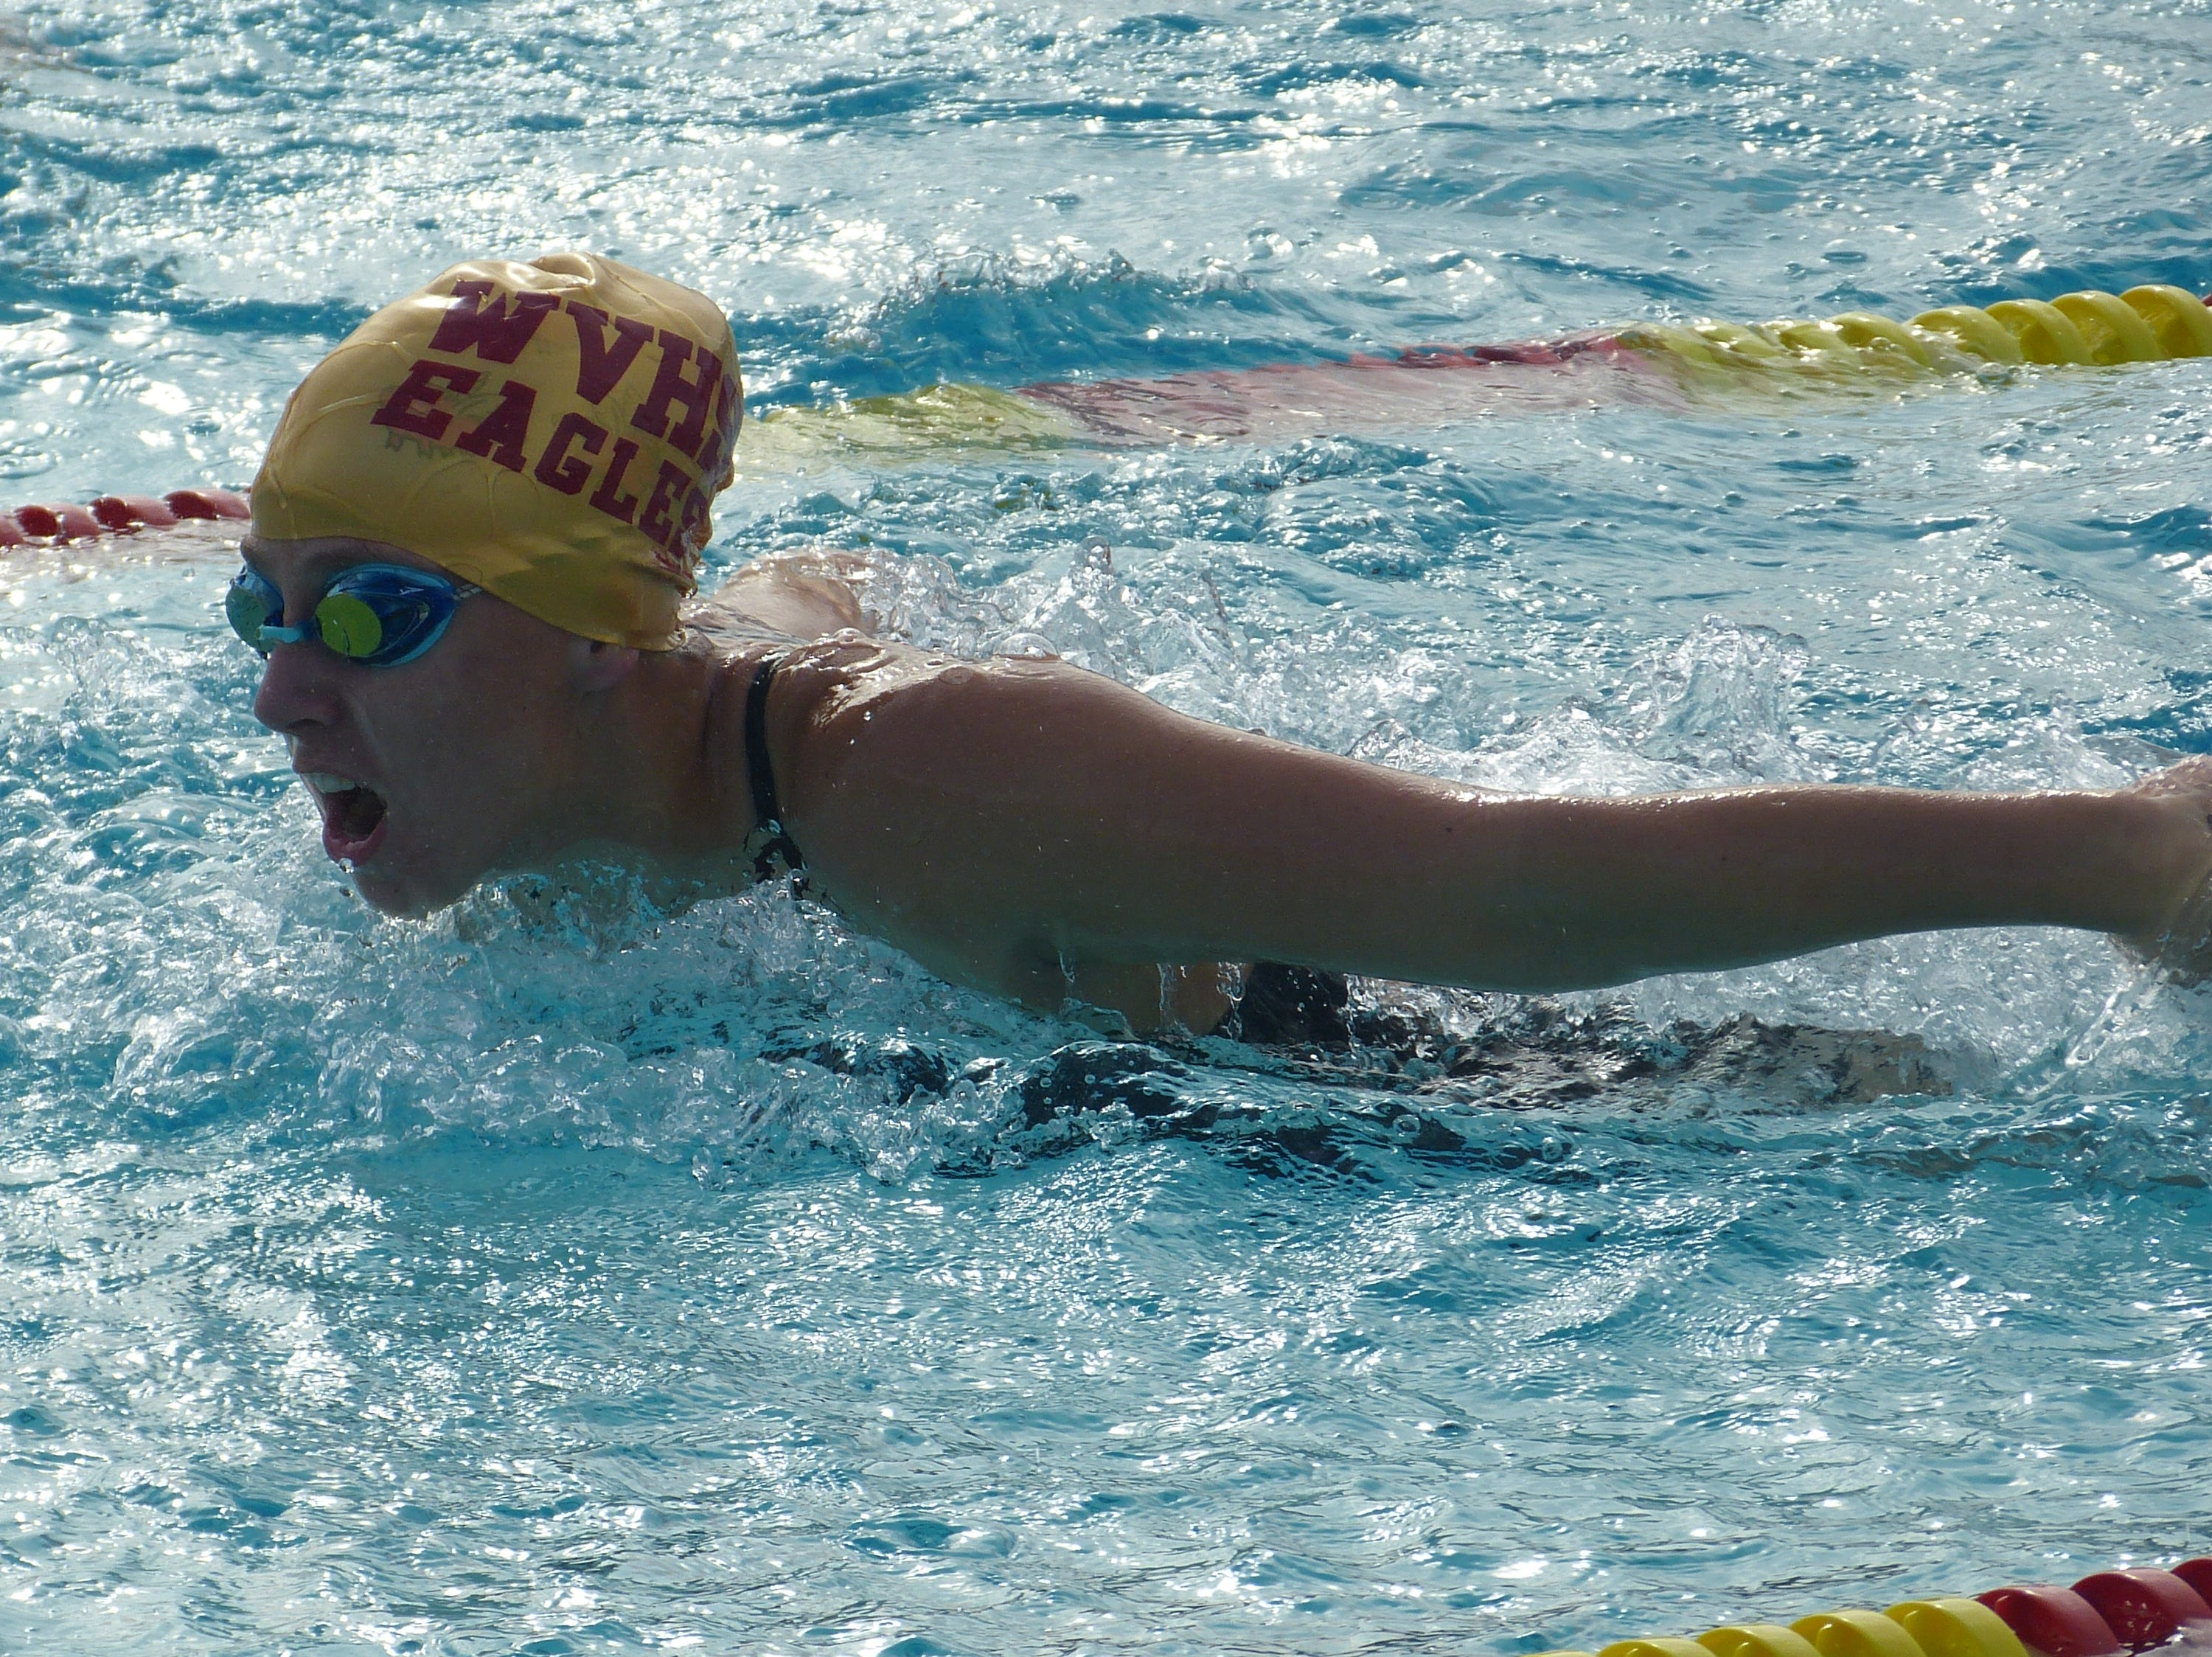 Bethany Chambers of West Valley swims in the 100-yard butterfly Wednesday at the NSCIF trials for Division 2 schools at West Valley High School on Oct. 24, 2018.